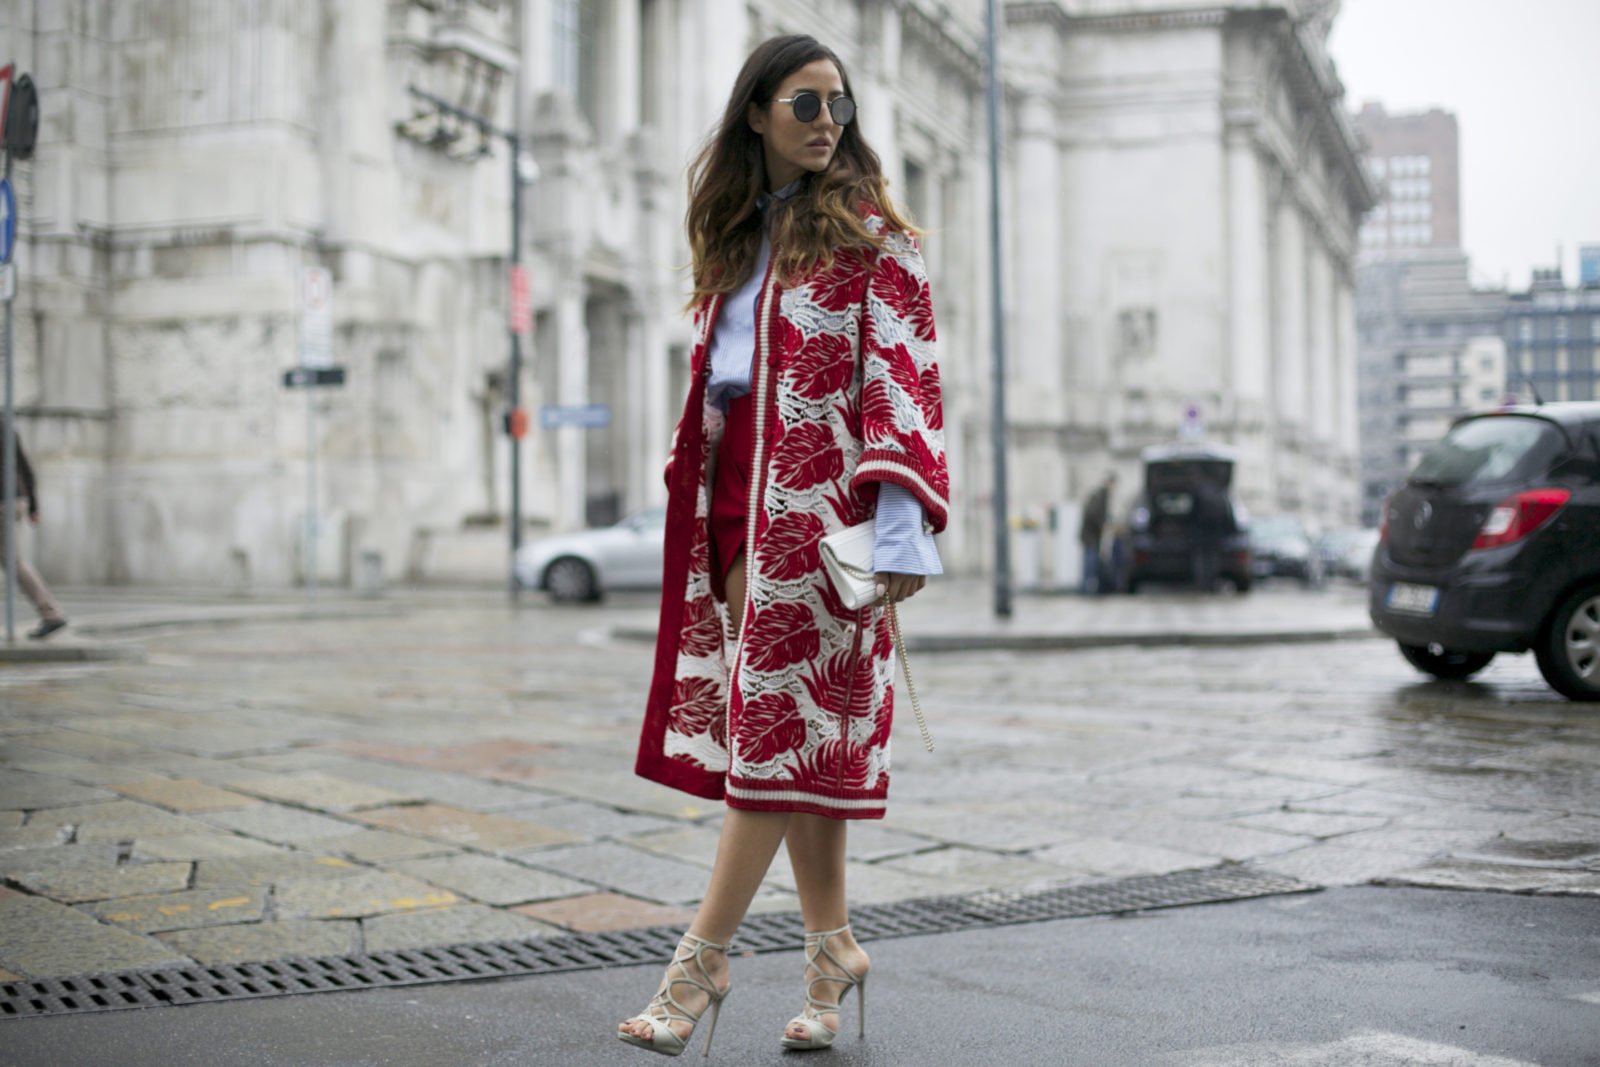 The best street style looks of Fashion Month